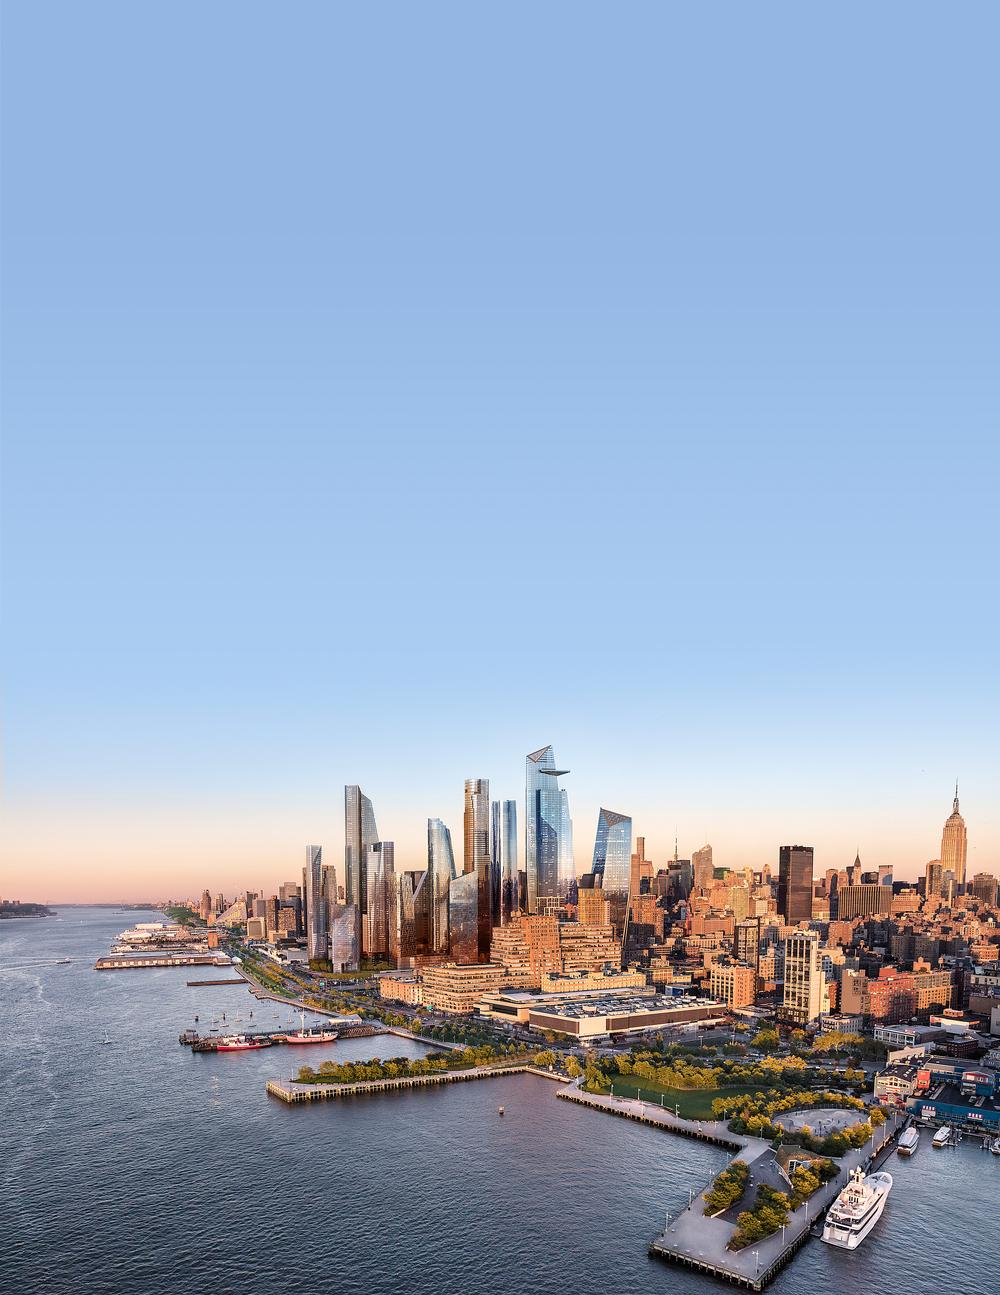 The plan to redevelop Manhattan's west side was a major part of New York's bid to host the 2012 Olympics